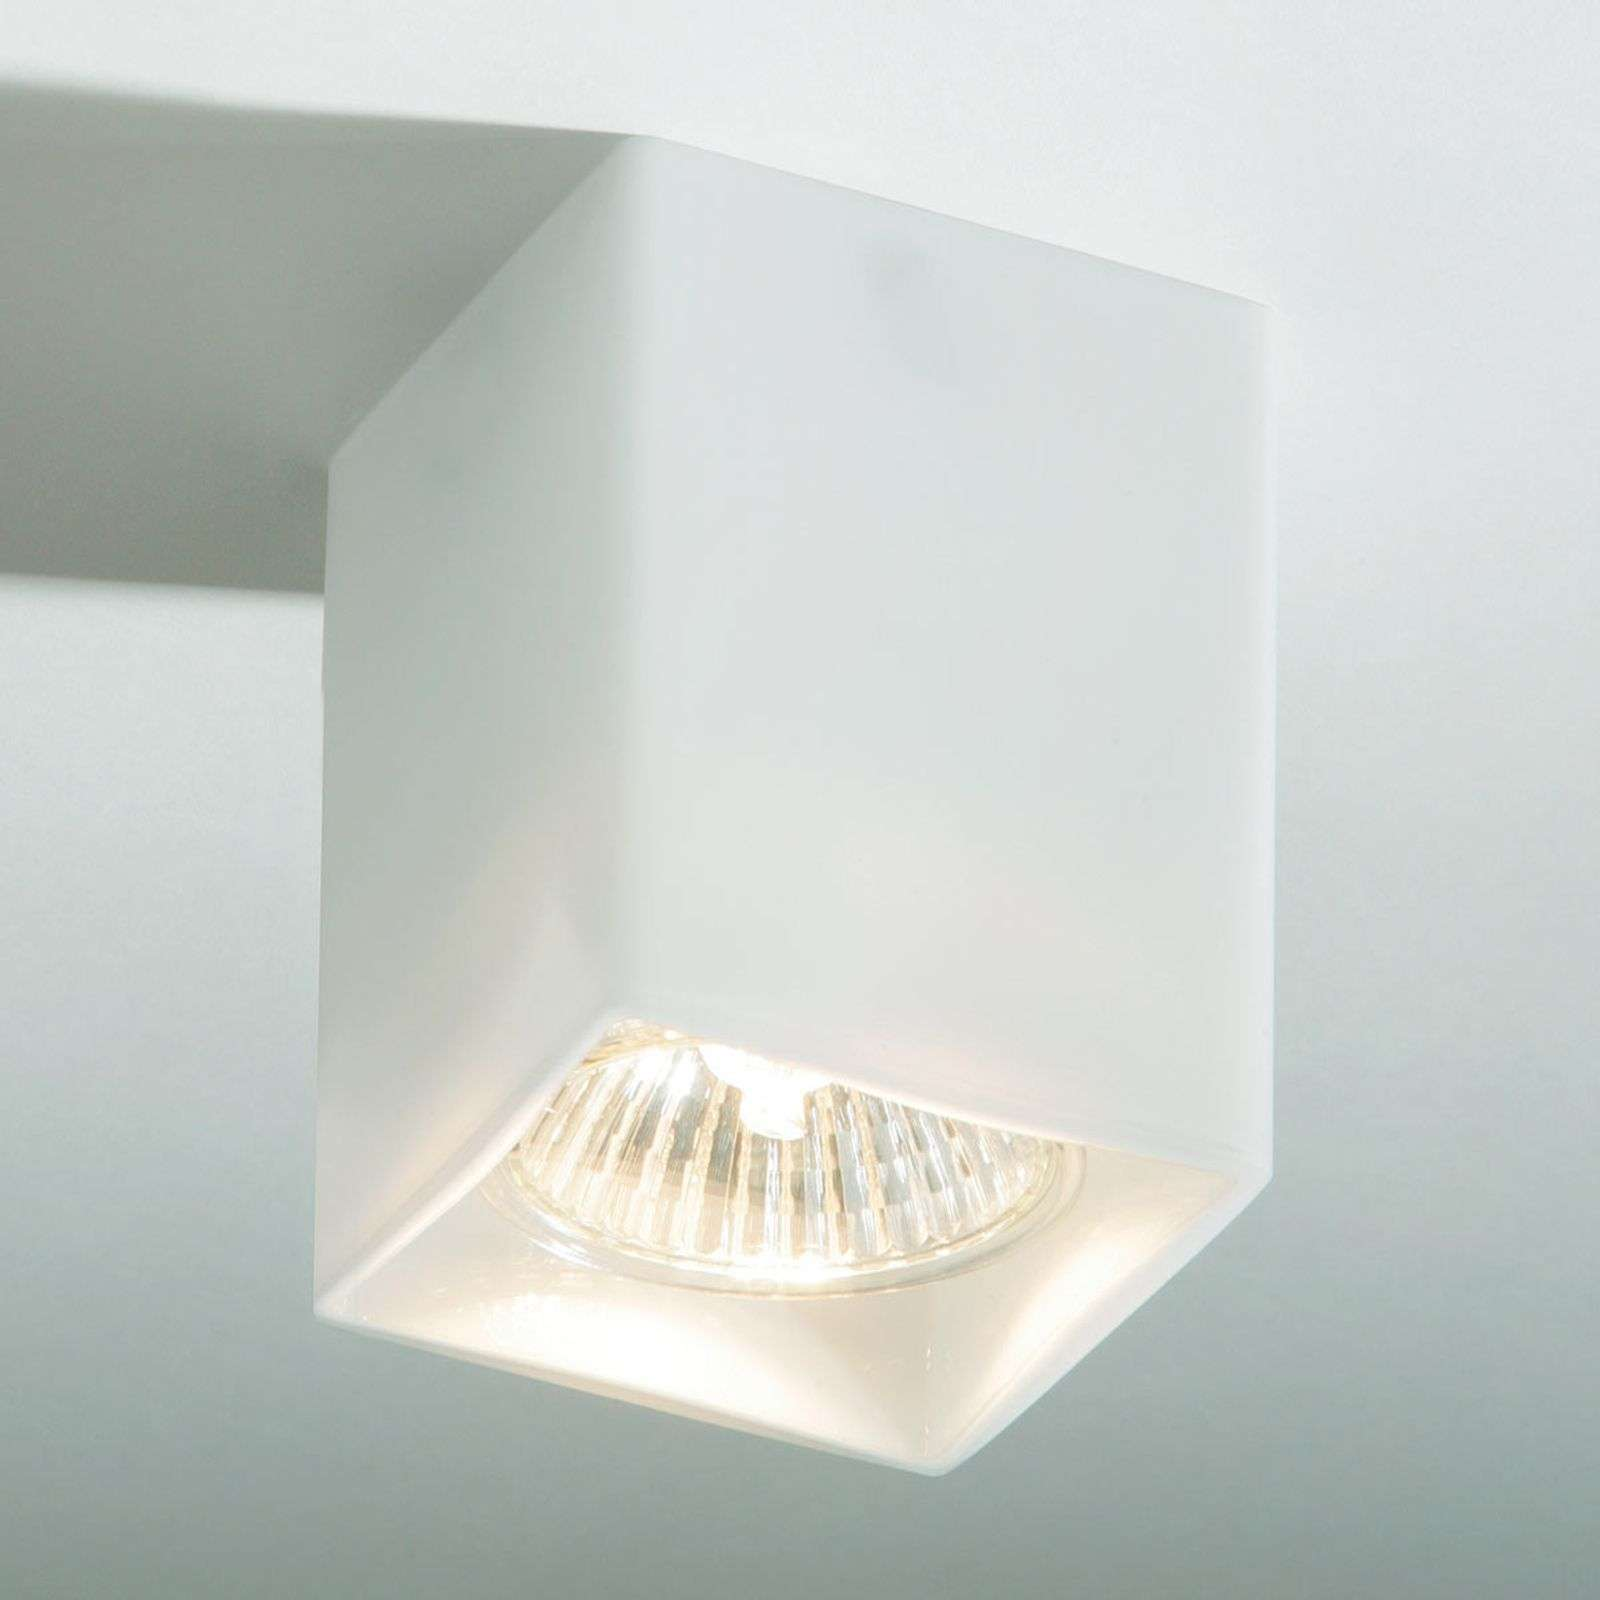 Wall lamps|Ceiling lights Square ceiling light QUADRO made of white glass